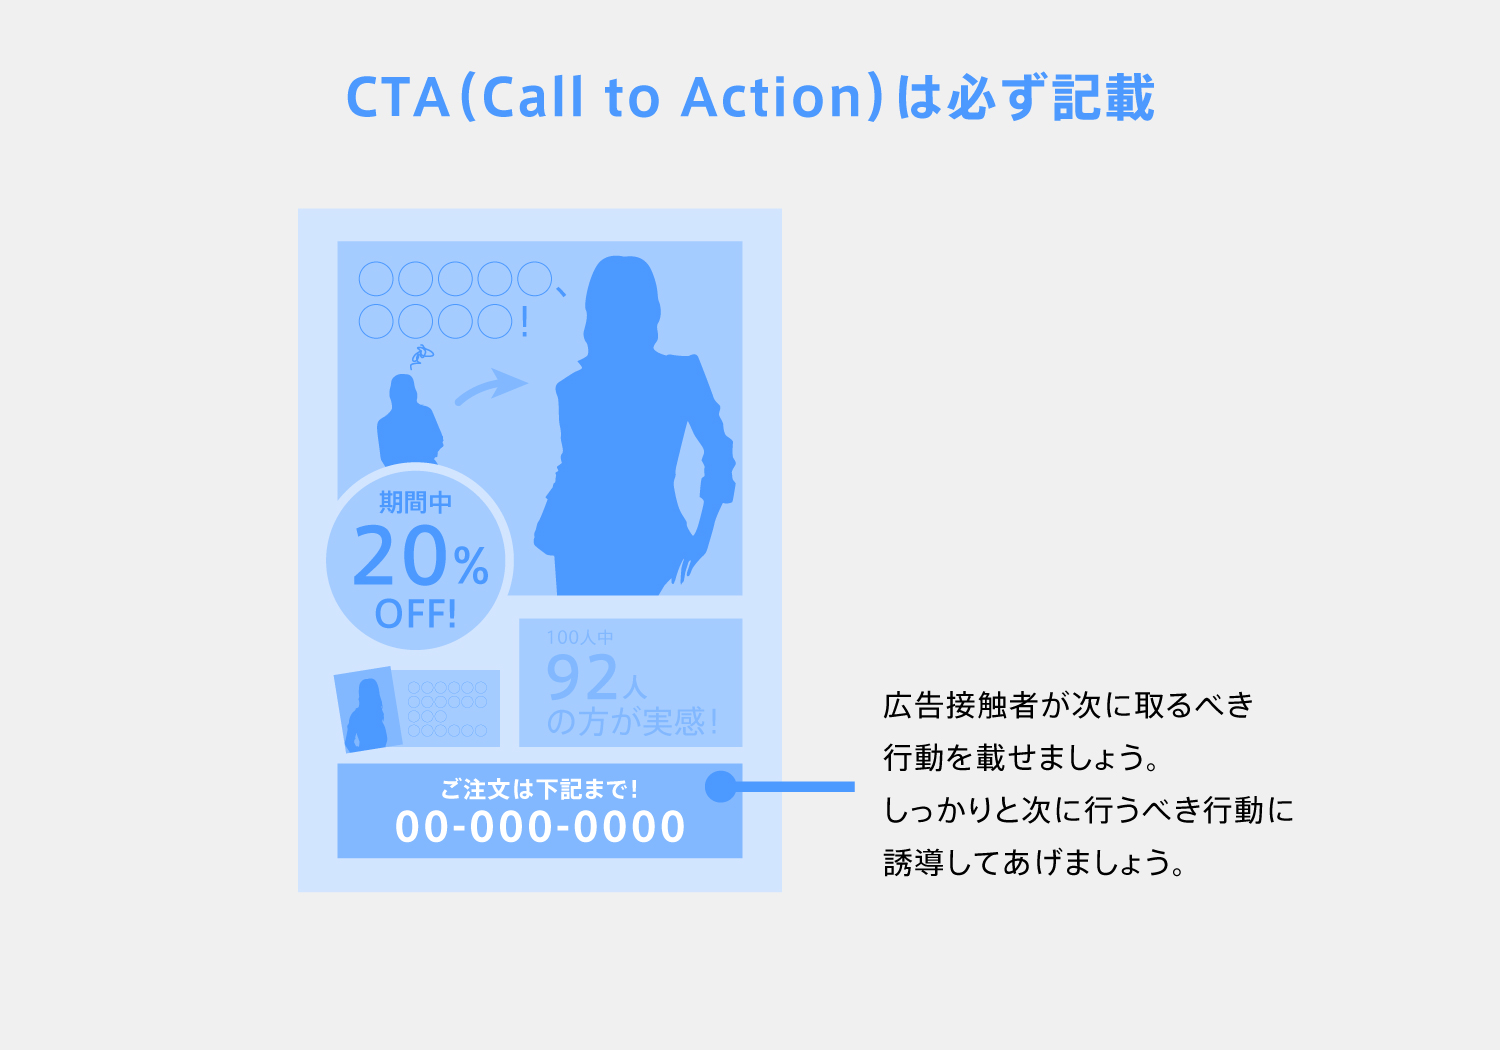 CTA(Call To Action)は必ず記載